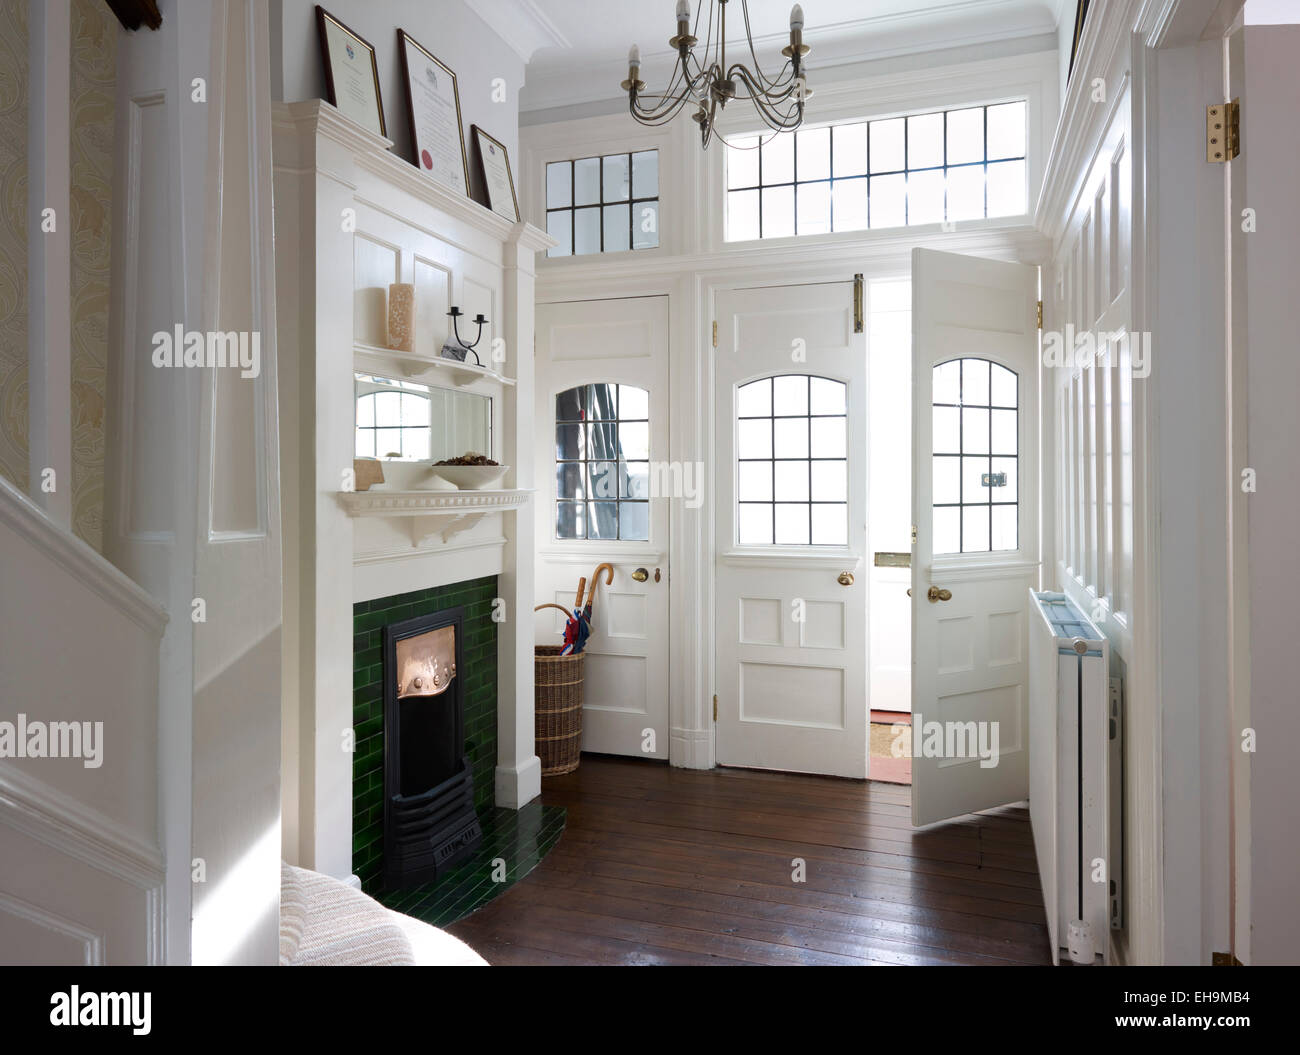 White Entrance Hall With Green Fireplace And Dark Wood